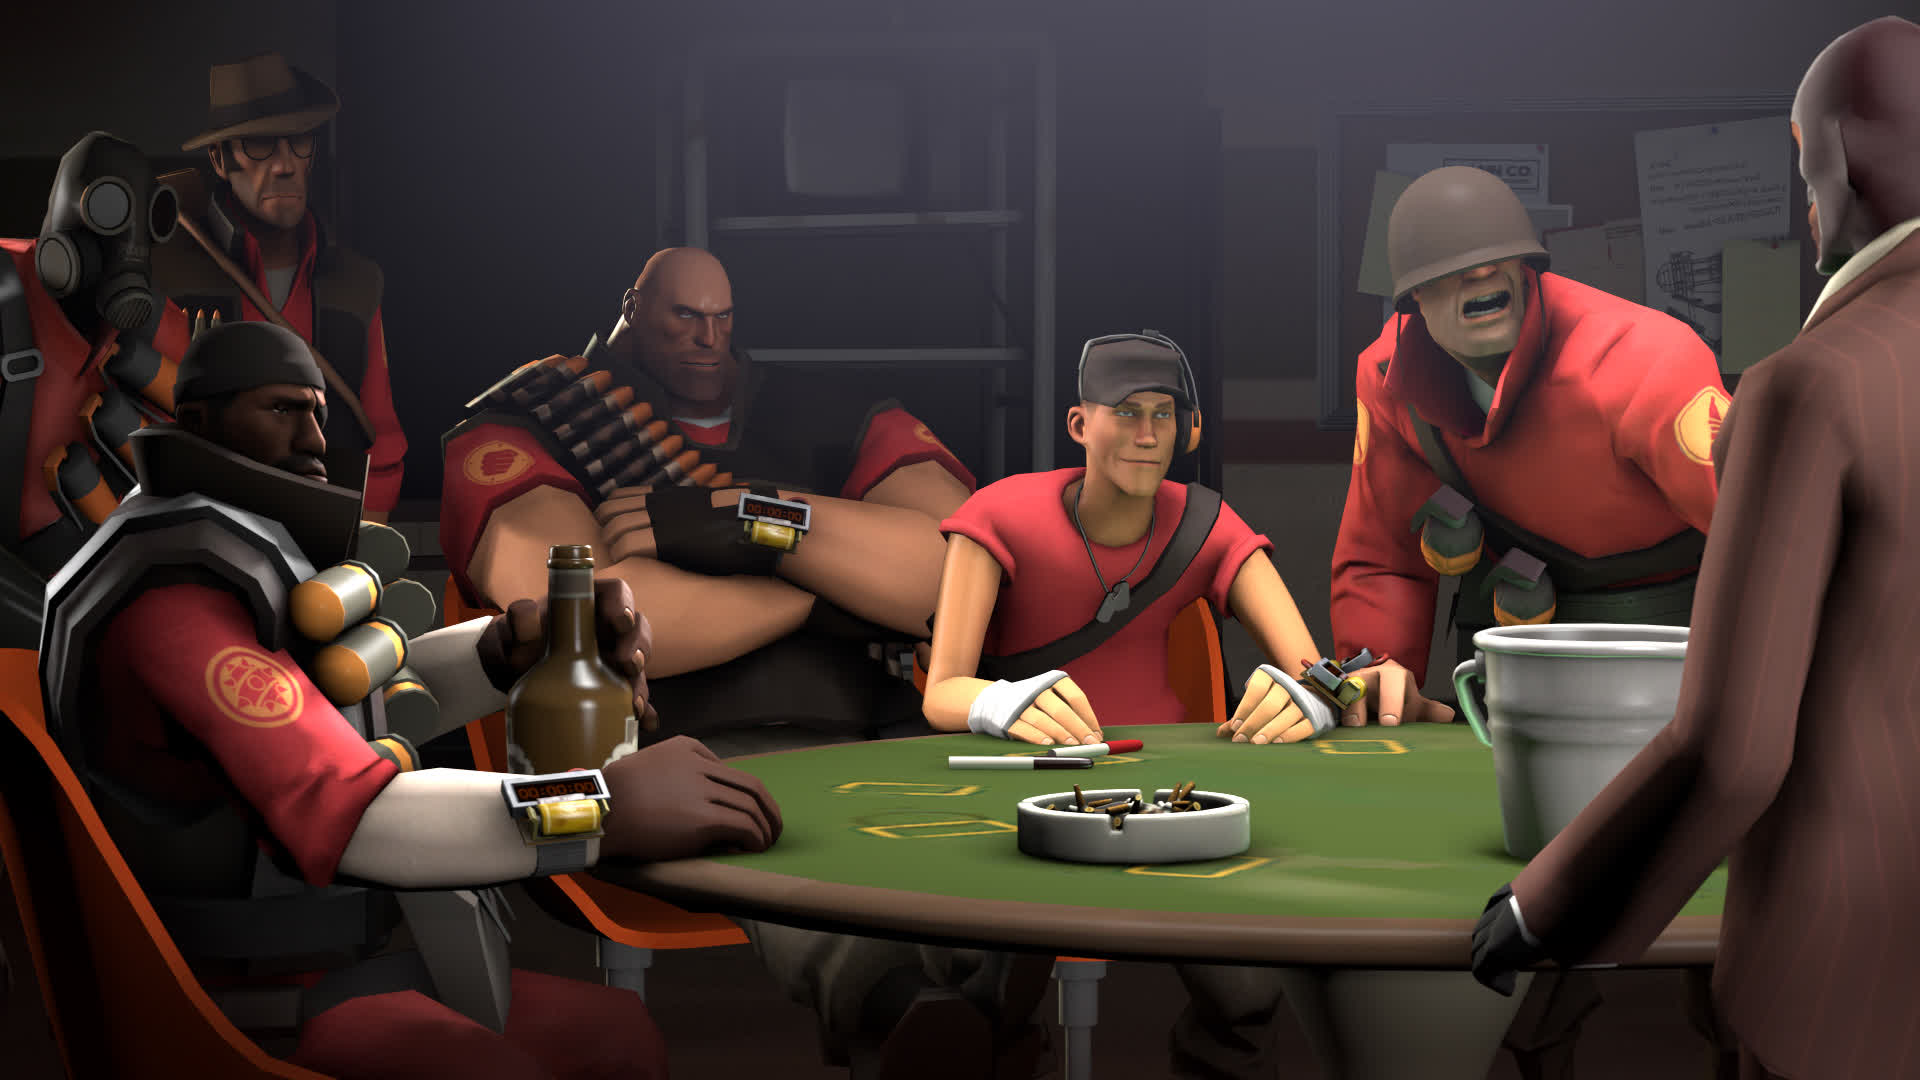 Team Fortress 2 just peaked at 150,000 players on Steam, a new record